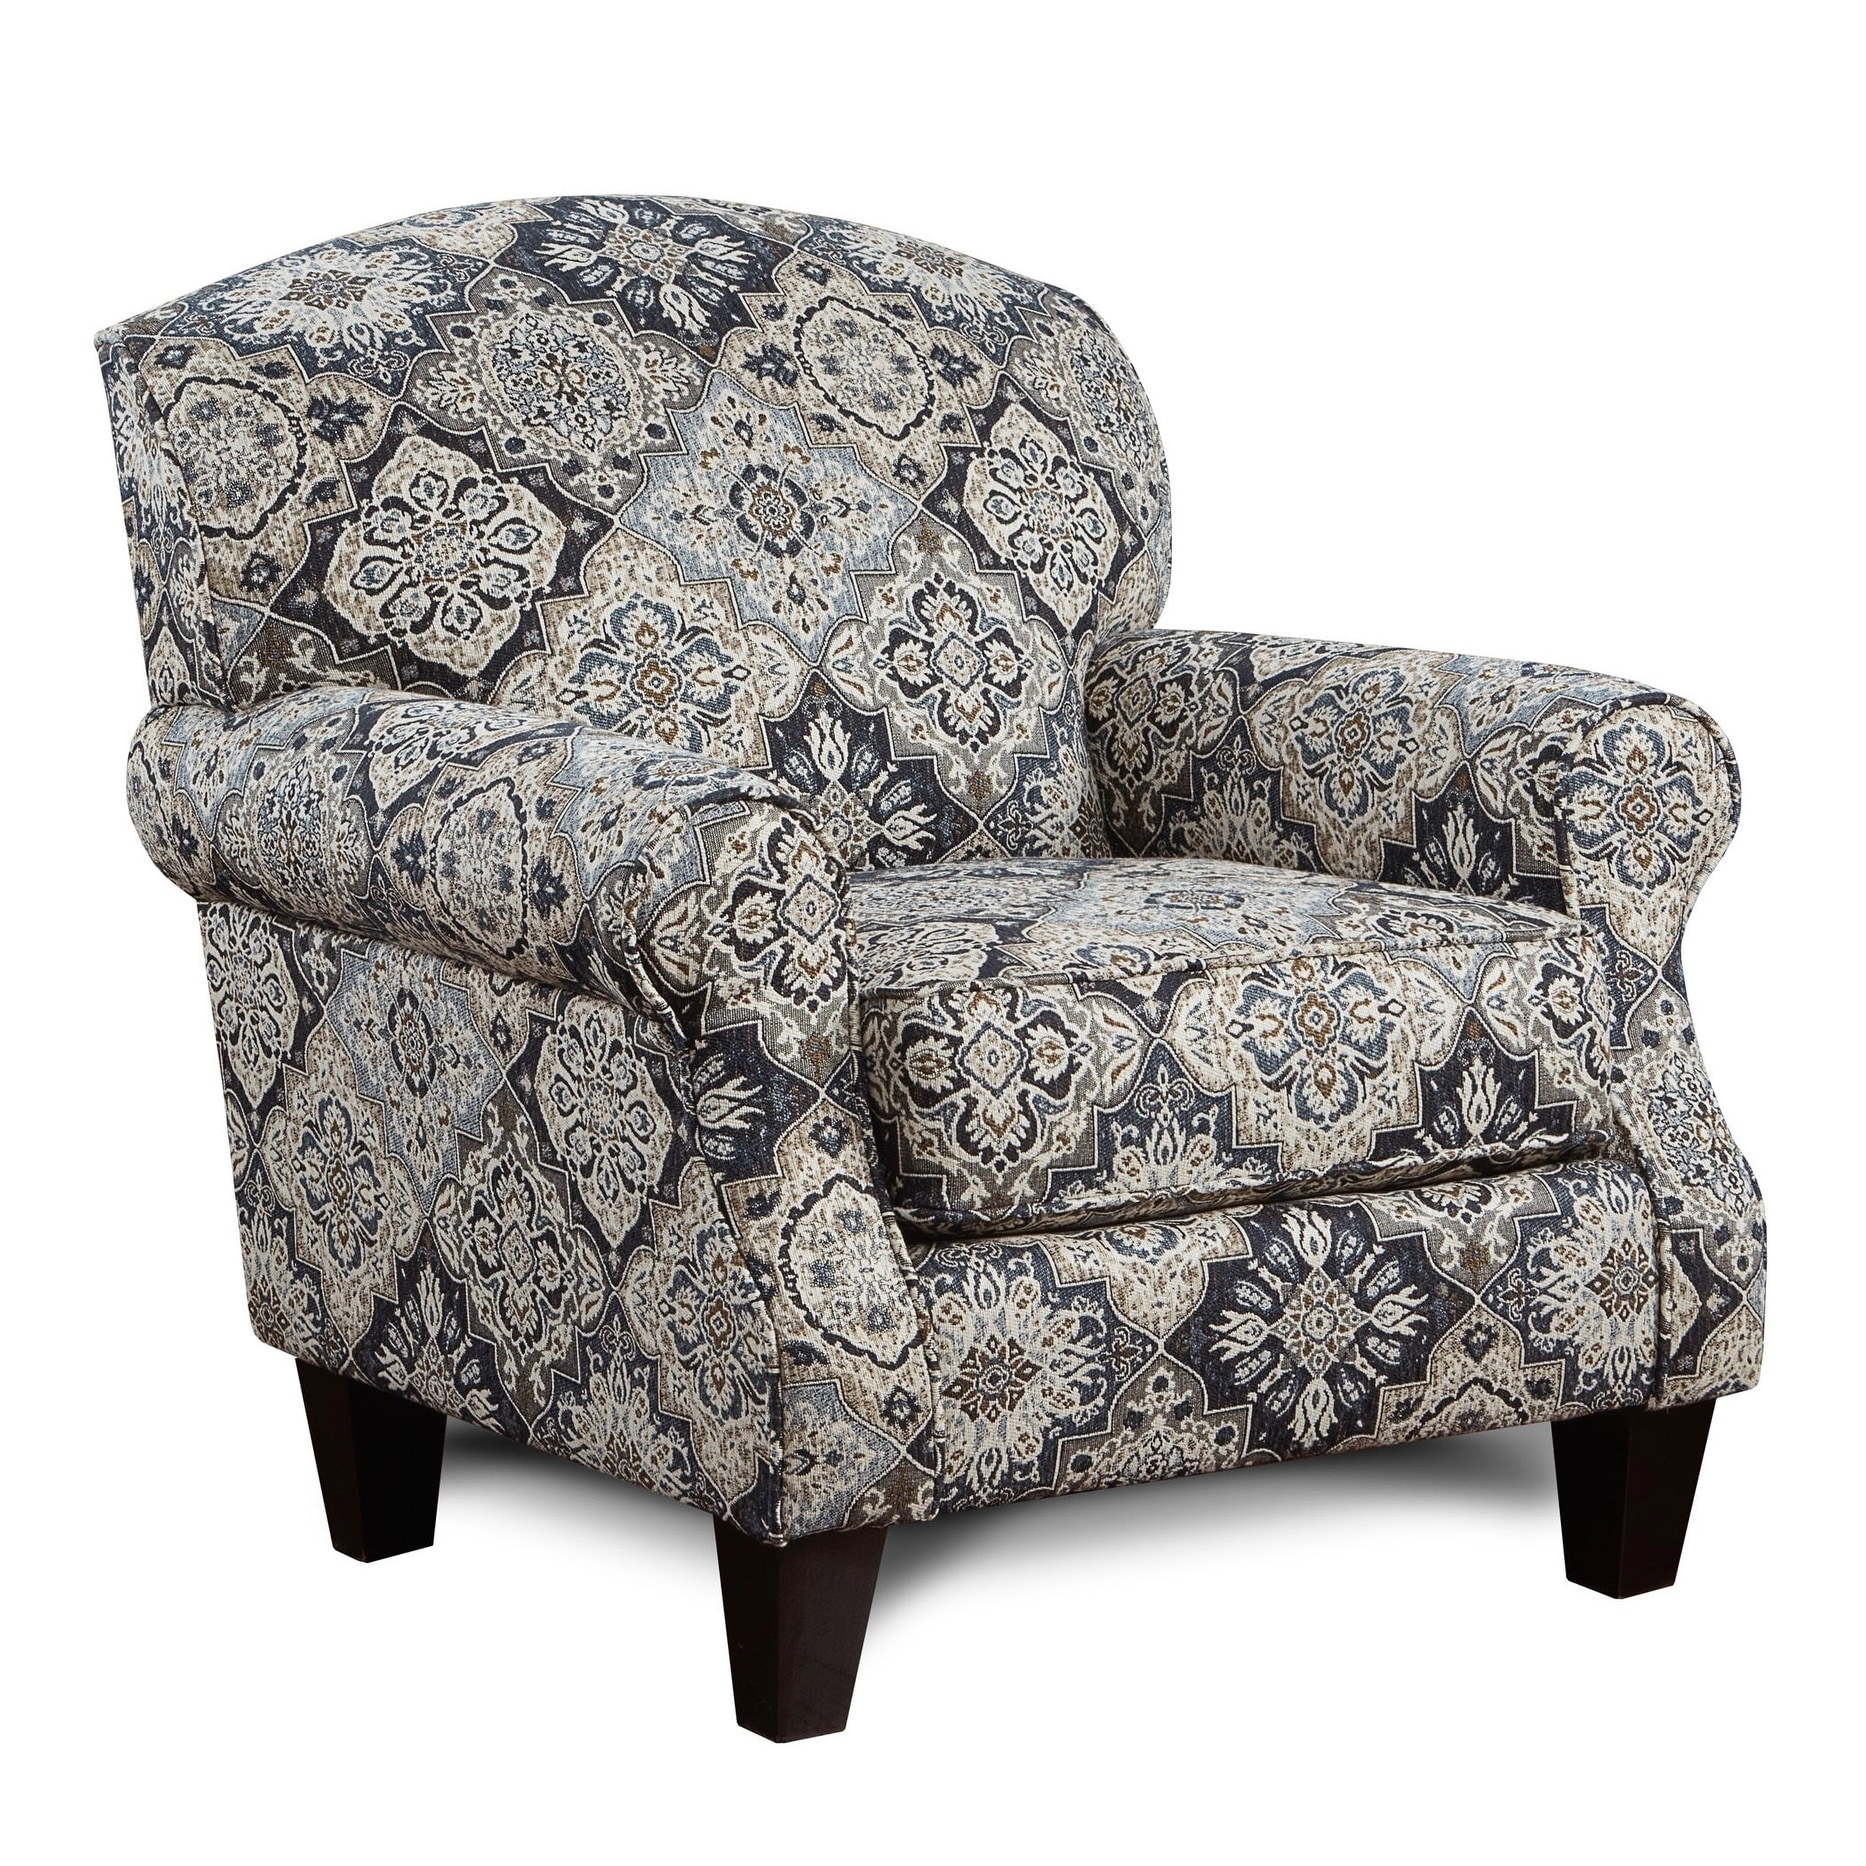 Black And White Accent Chair Sambuca Black White Grey Accent Chair